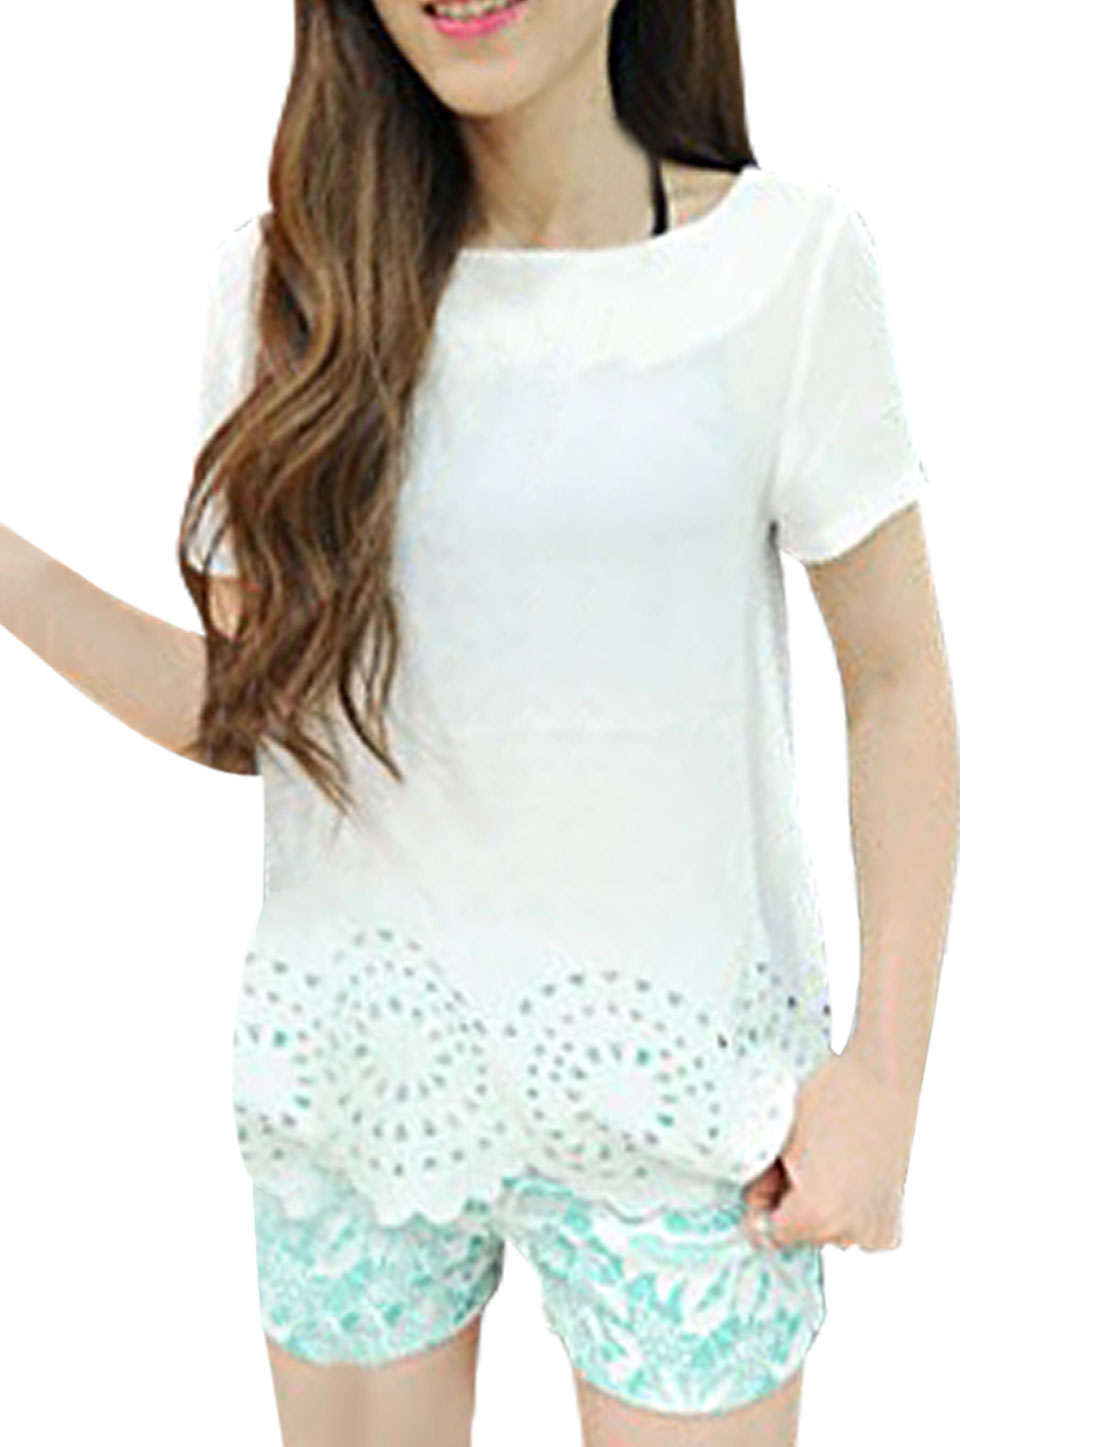 Lady New Fashion Round Neck Short Sleeve Wavy Hem Design White Blouse XS